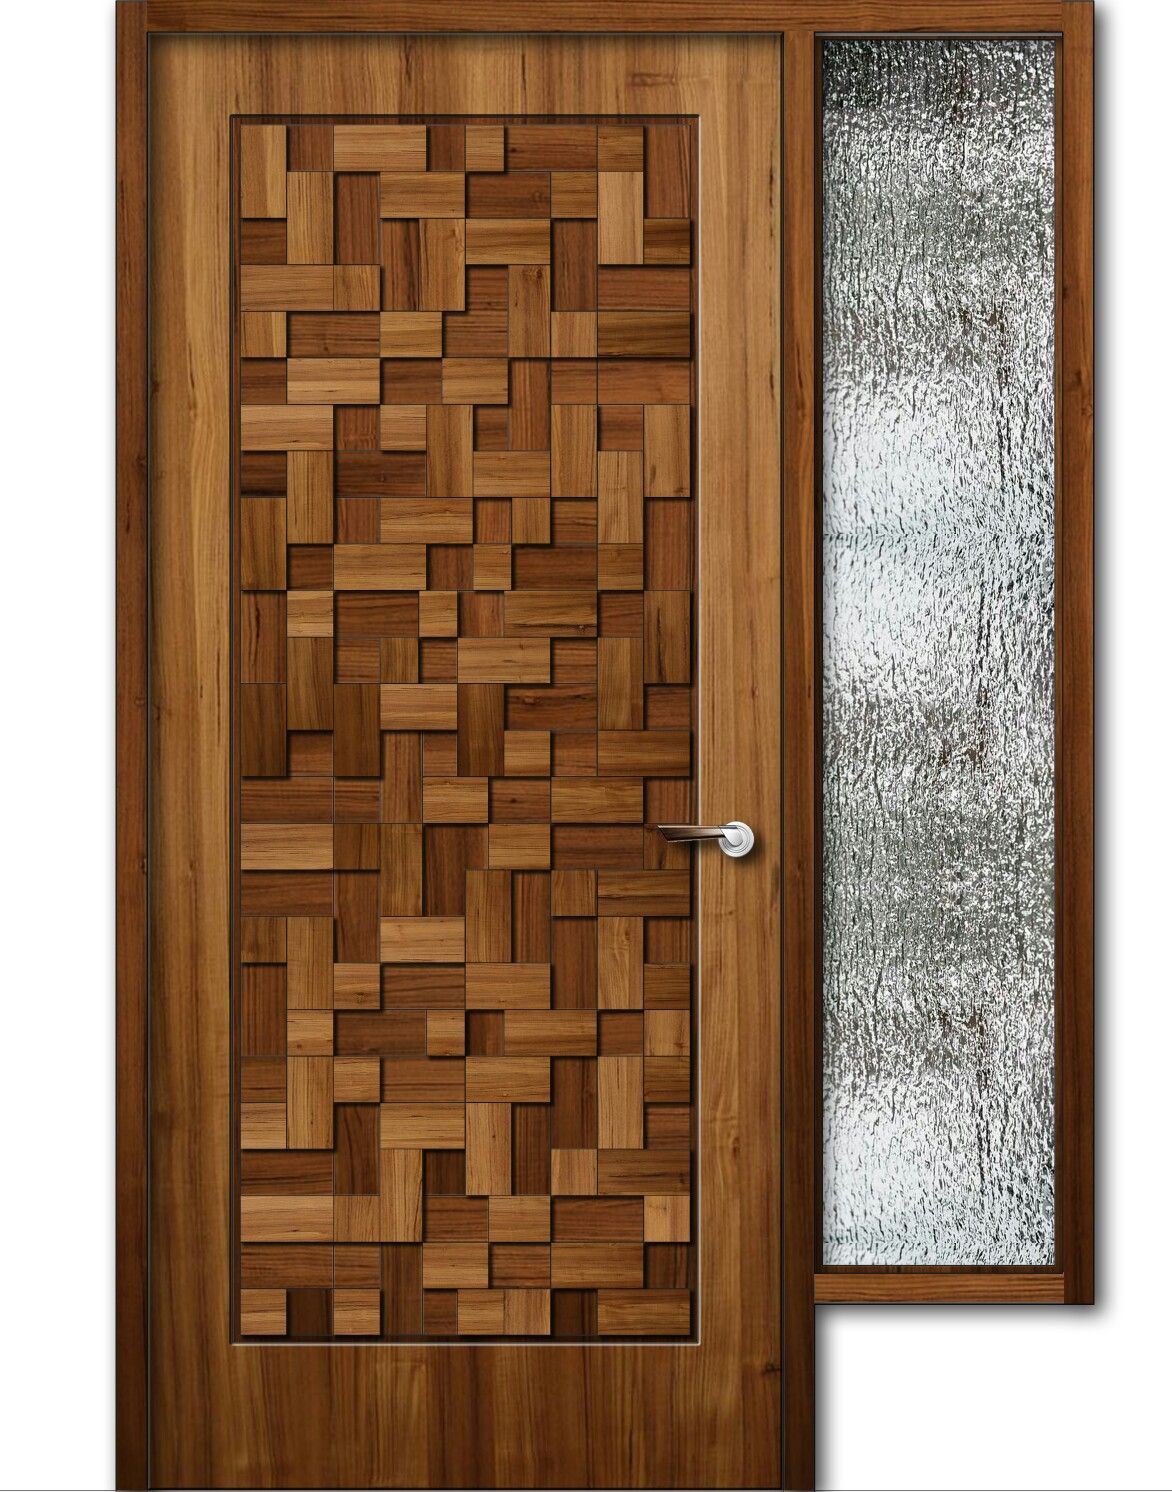 Teak wood finish wooden door with window 8feet height for Main door design images